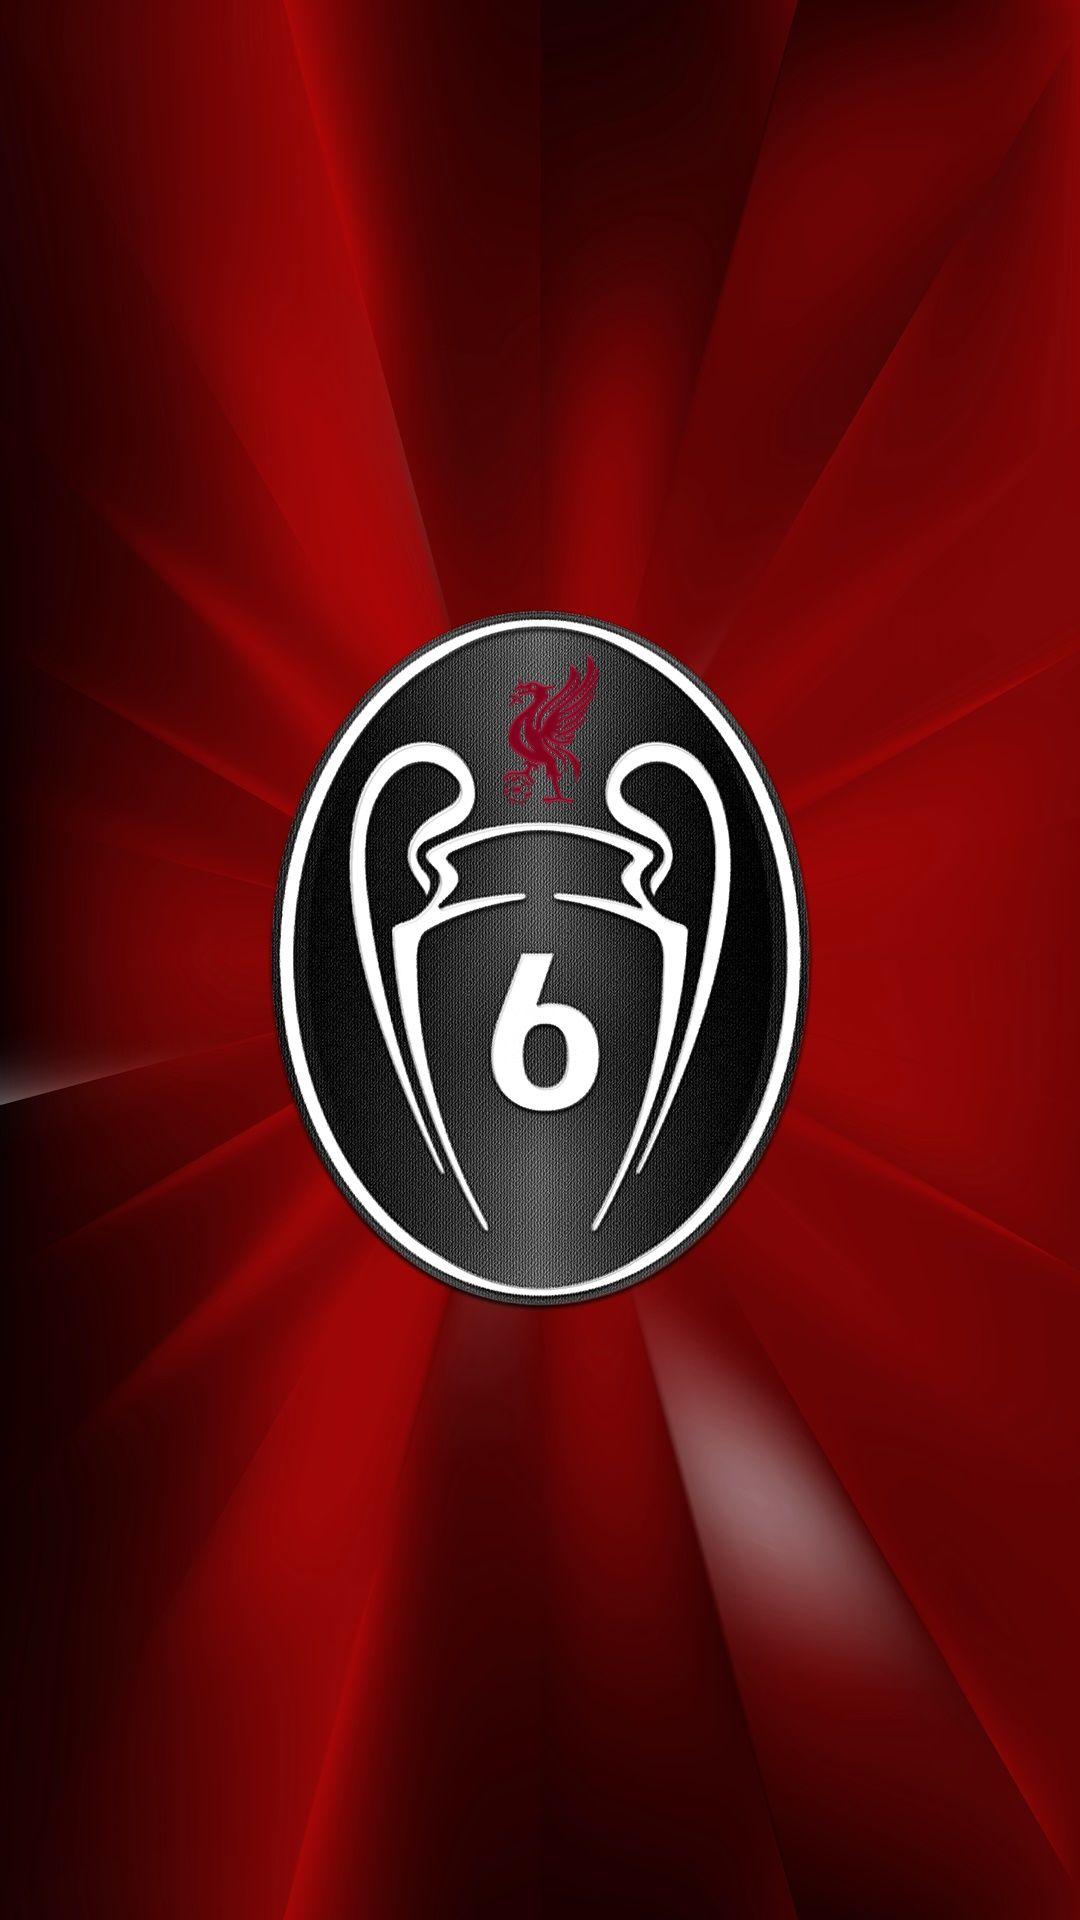 Liverpool Fc 6 Times Liverpool Fc 3023835 Hd Wallpaper Backgrounds Download